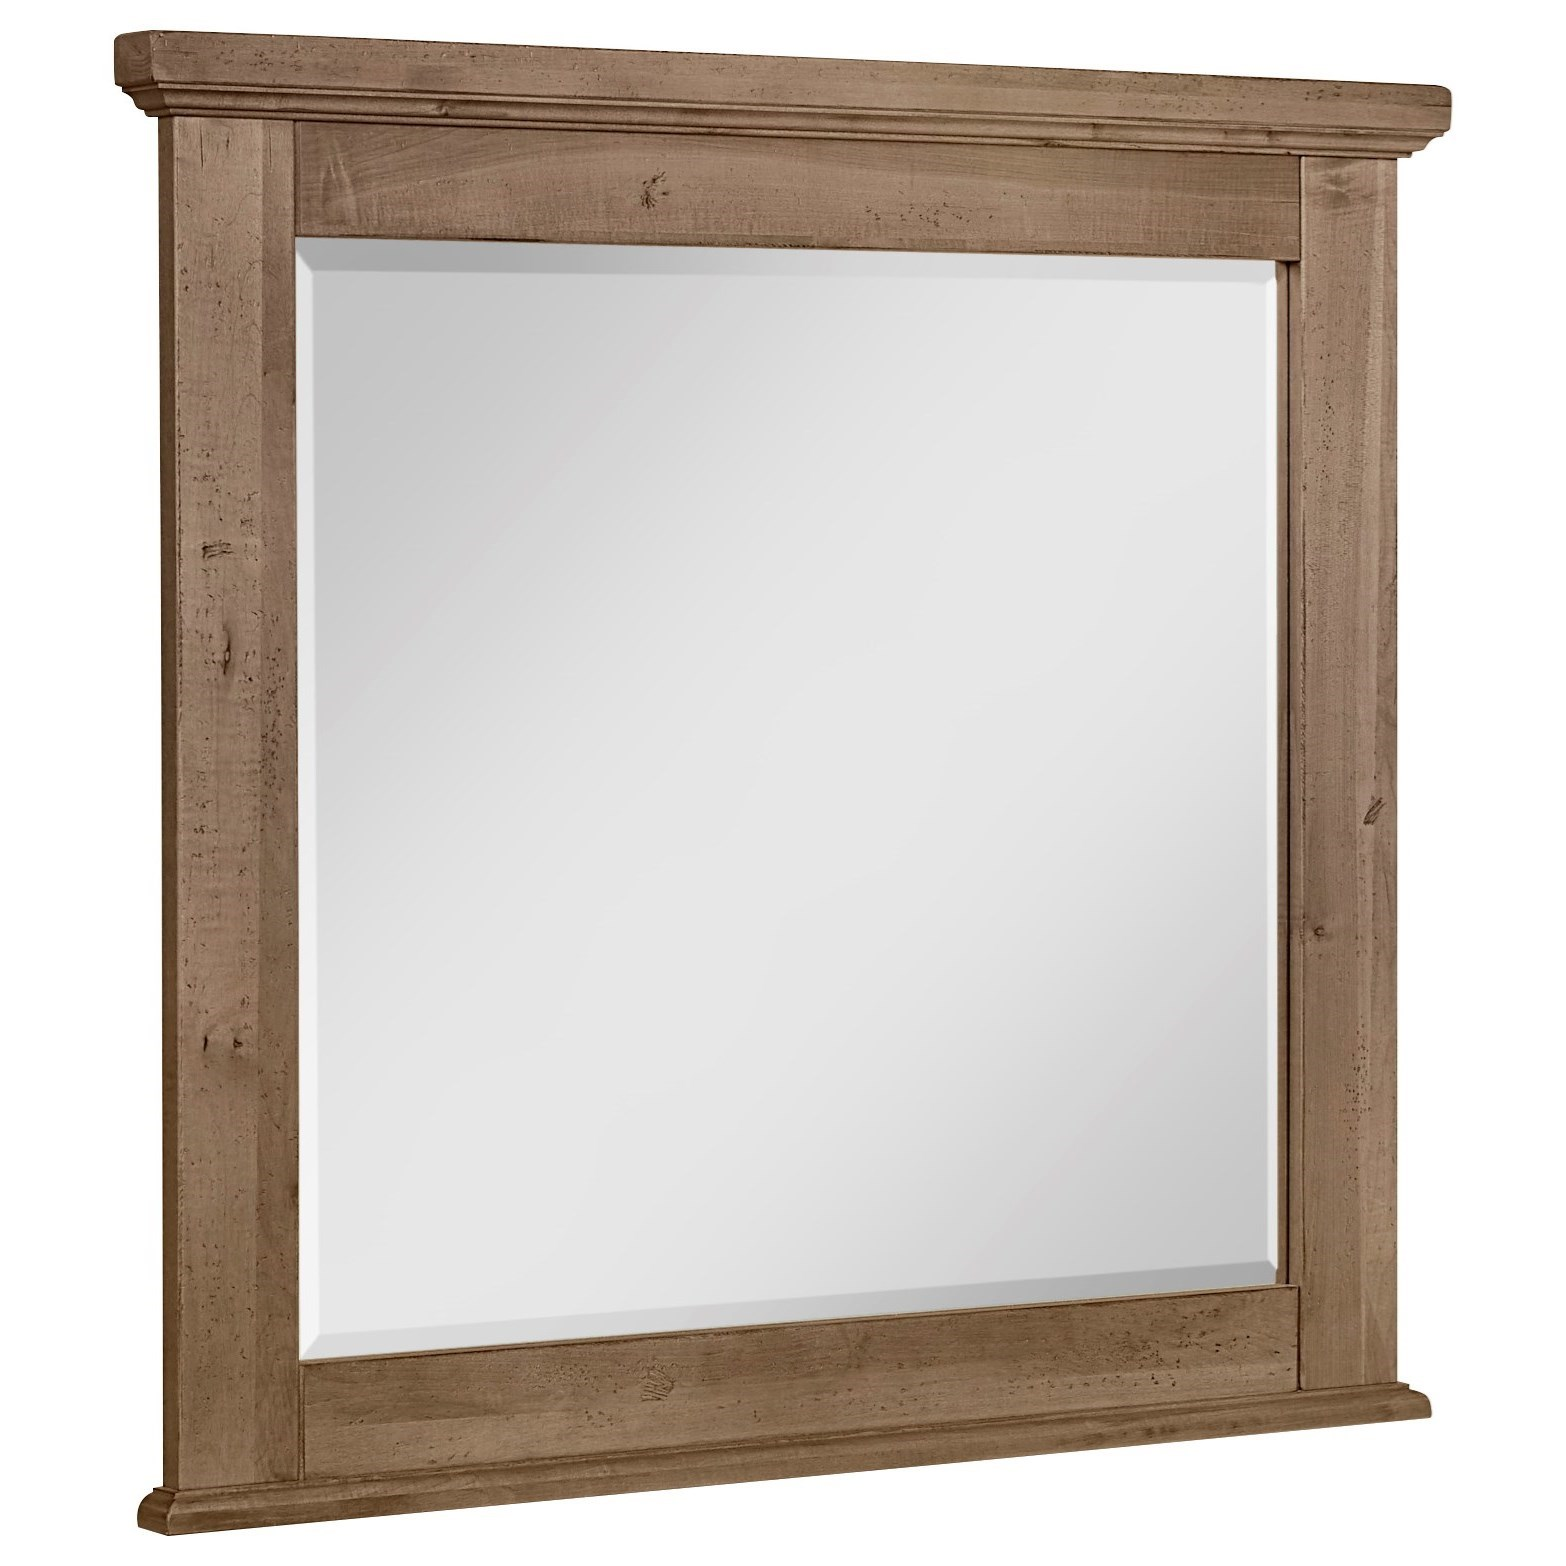 Cool Rustic Landscape Mirror - Beveled glass by Artisan & Post at Northeast Factory Direct